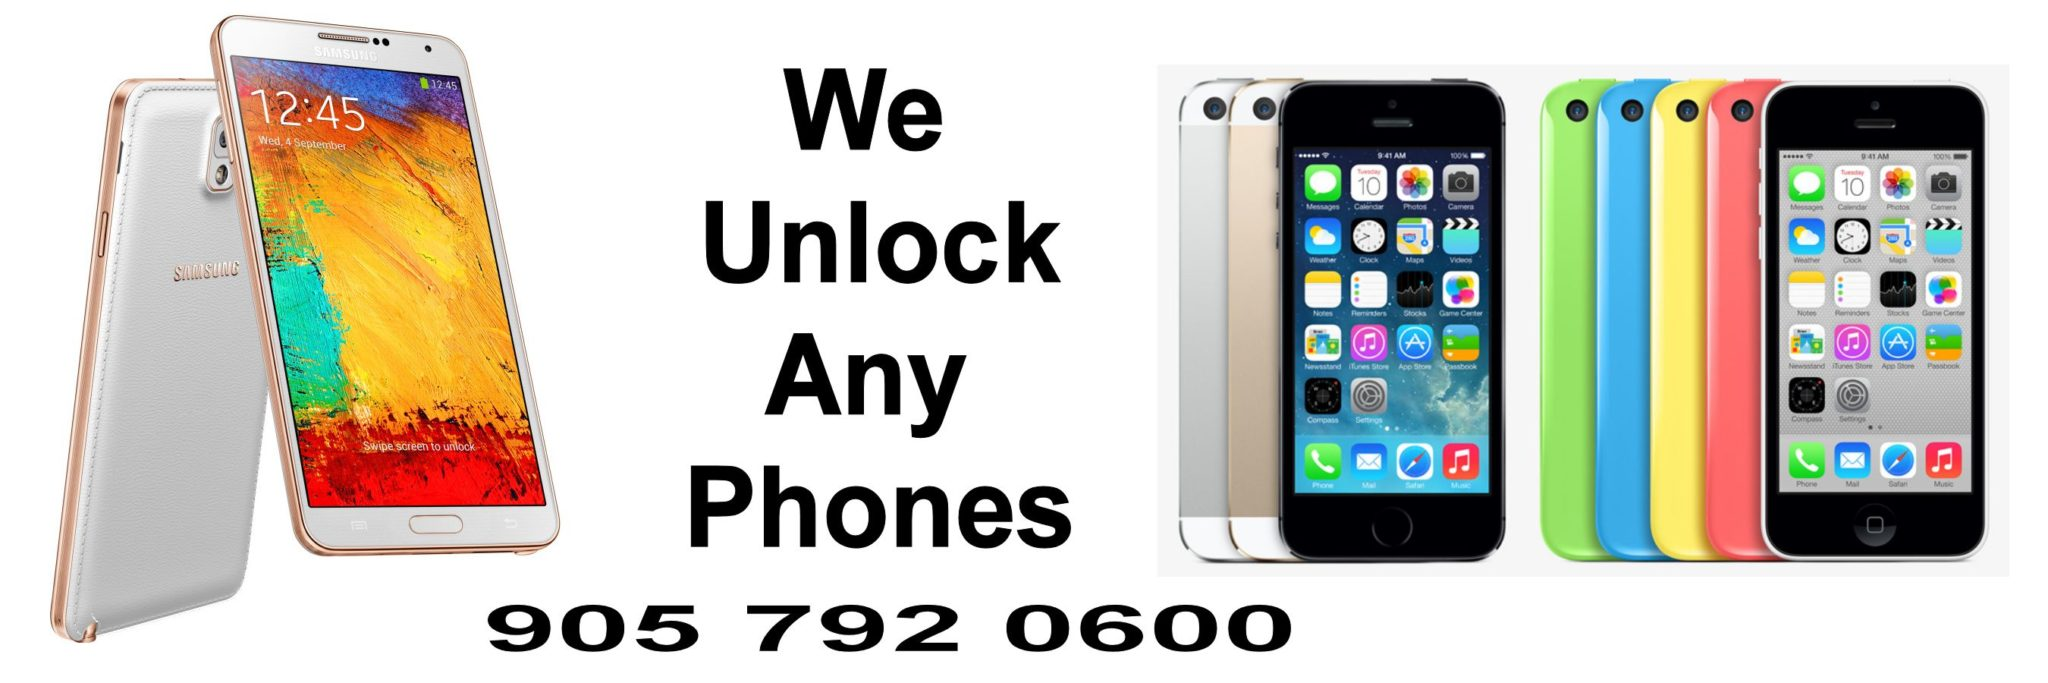 Unlock Phones from Ultracomputer.ca